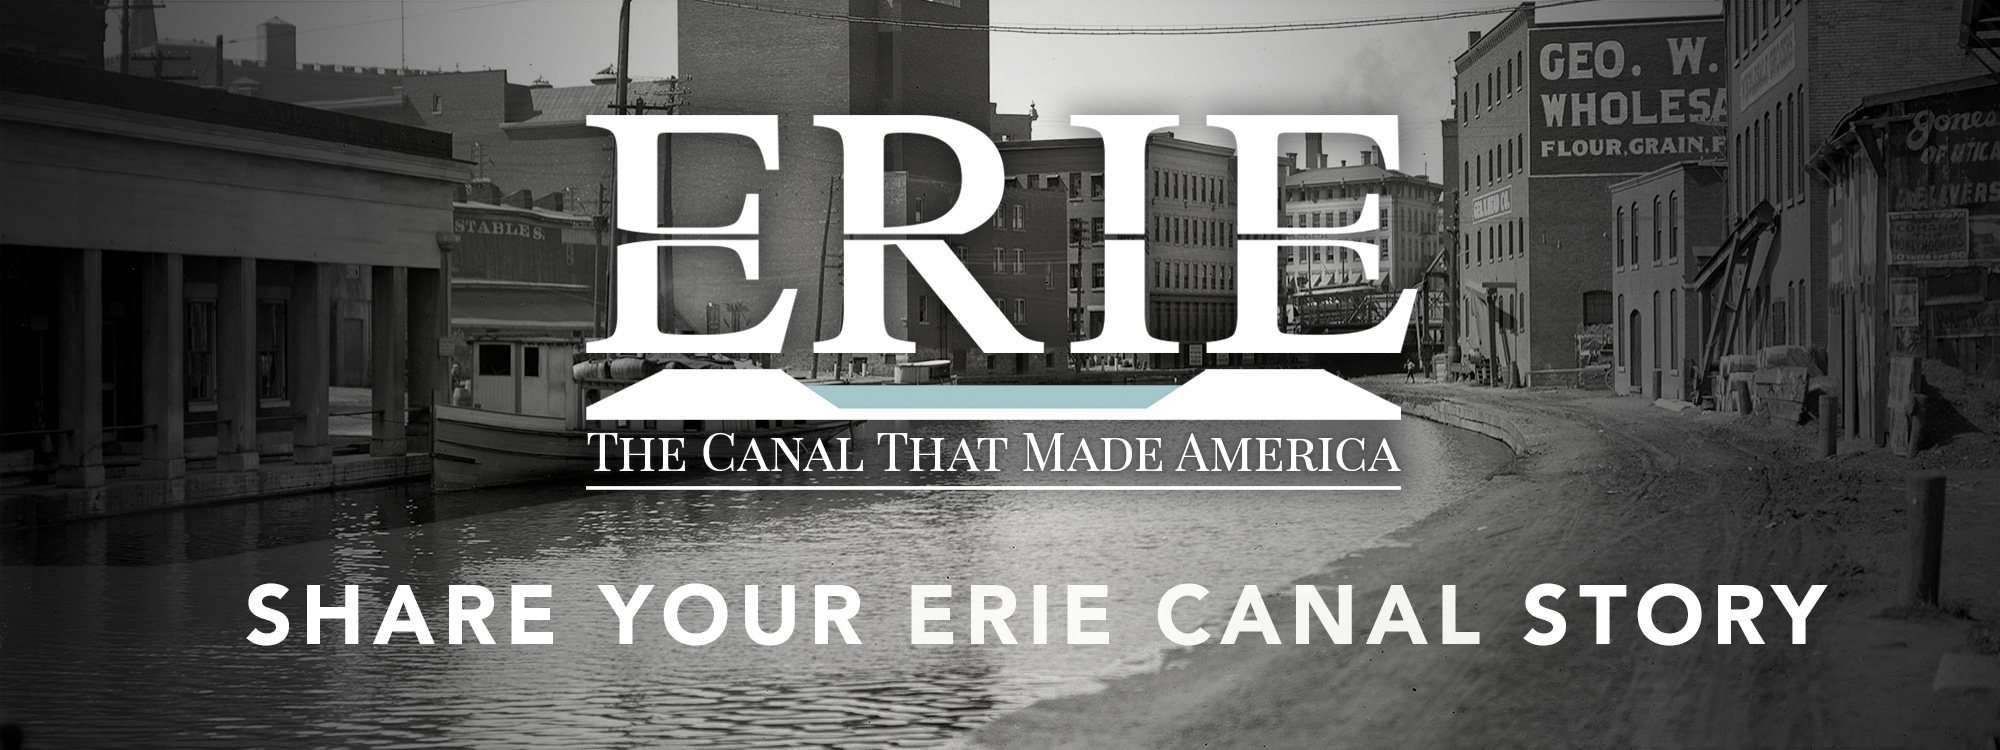 Erie-Canal-Header_story